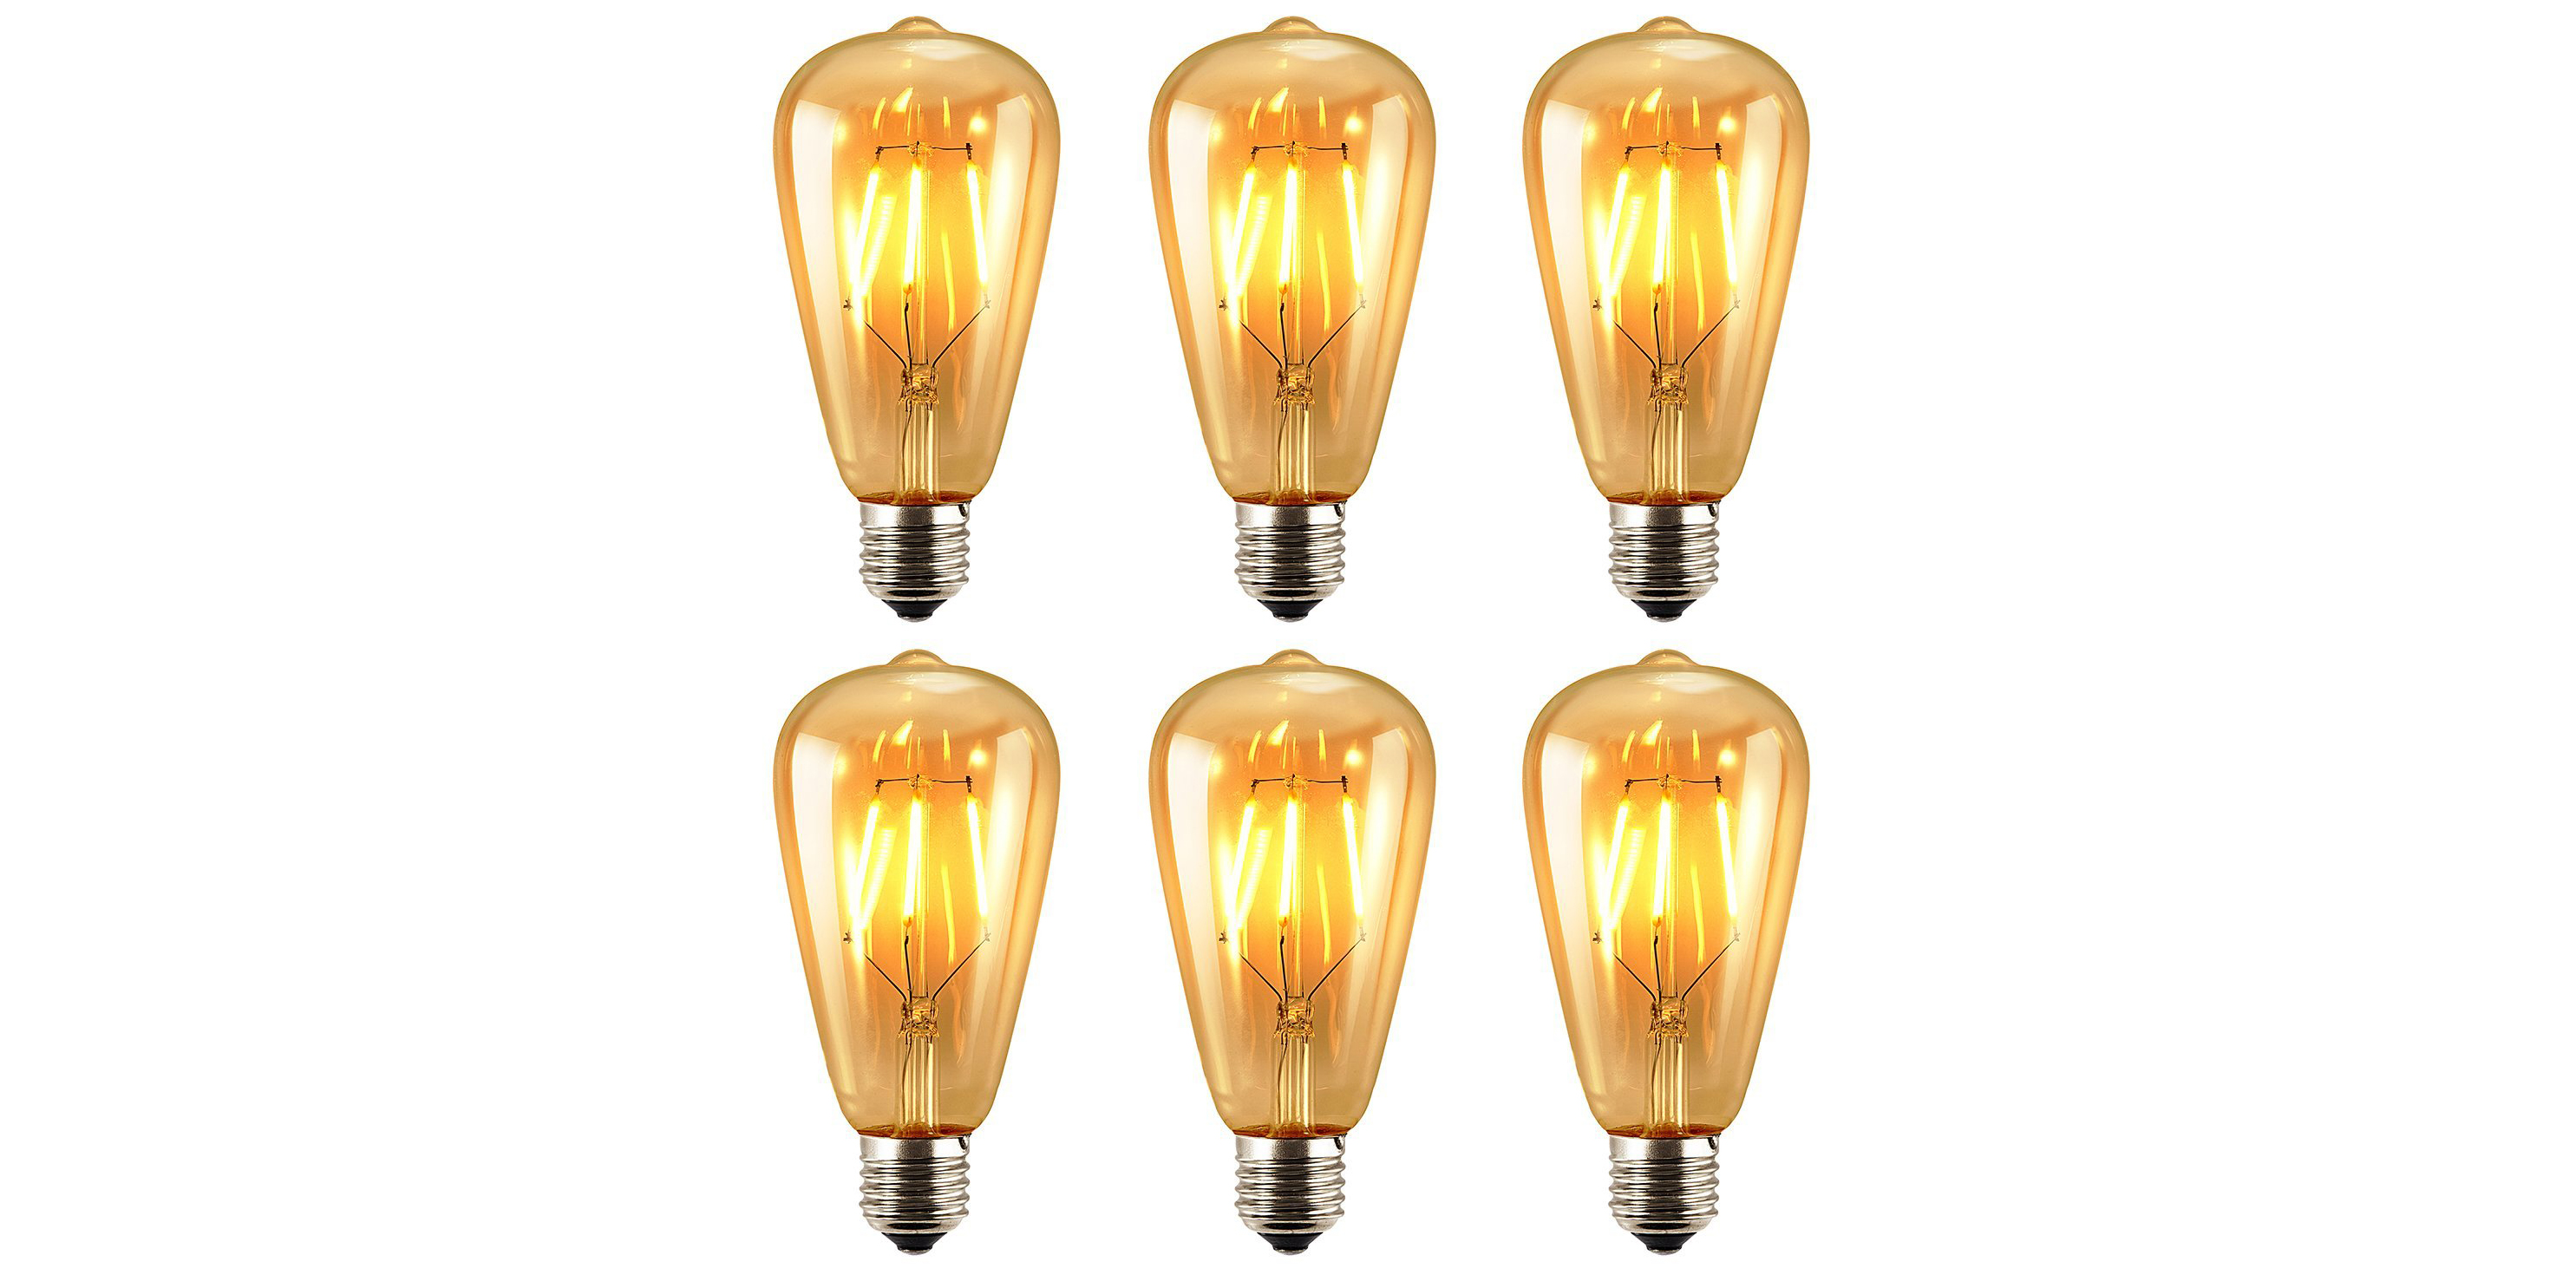 oak-leaf-edison-led-bulbs